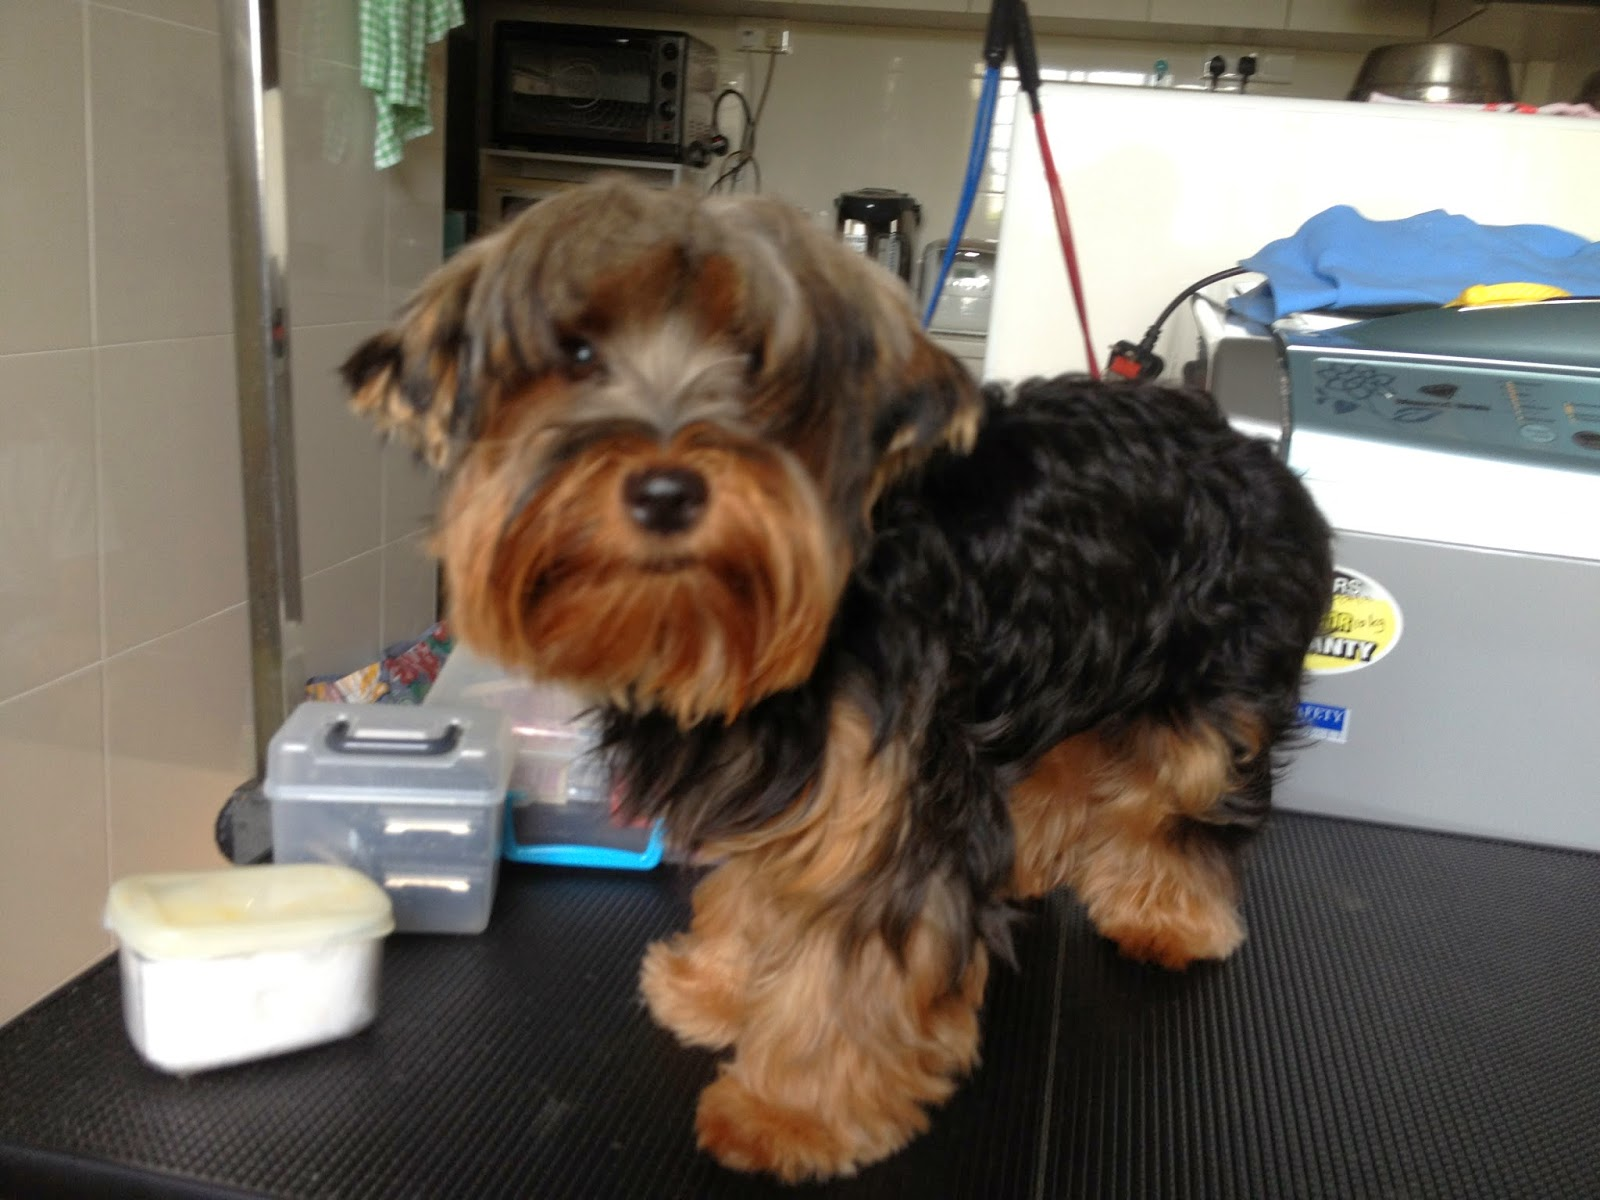 Dog Wallpaper Yorkie Puppy Cut Instructions Picture Wallpaper